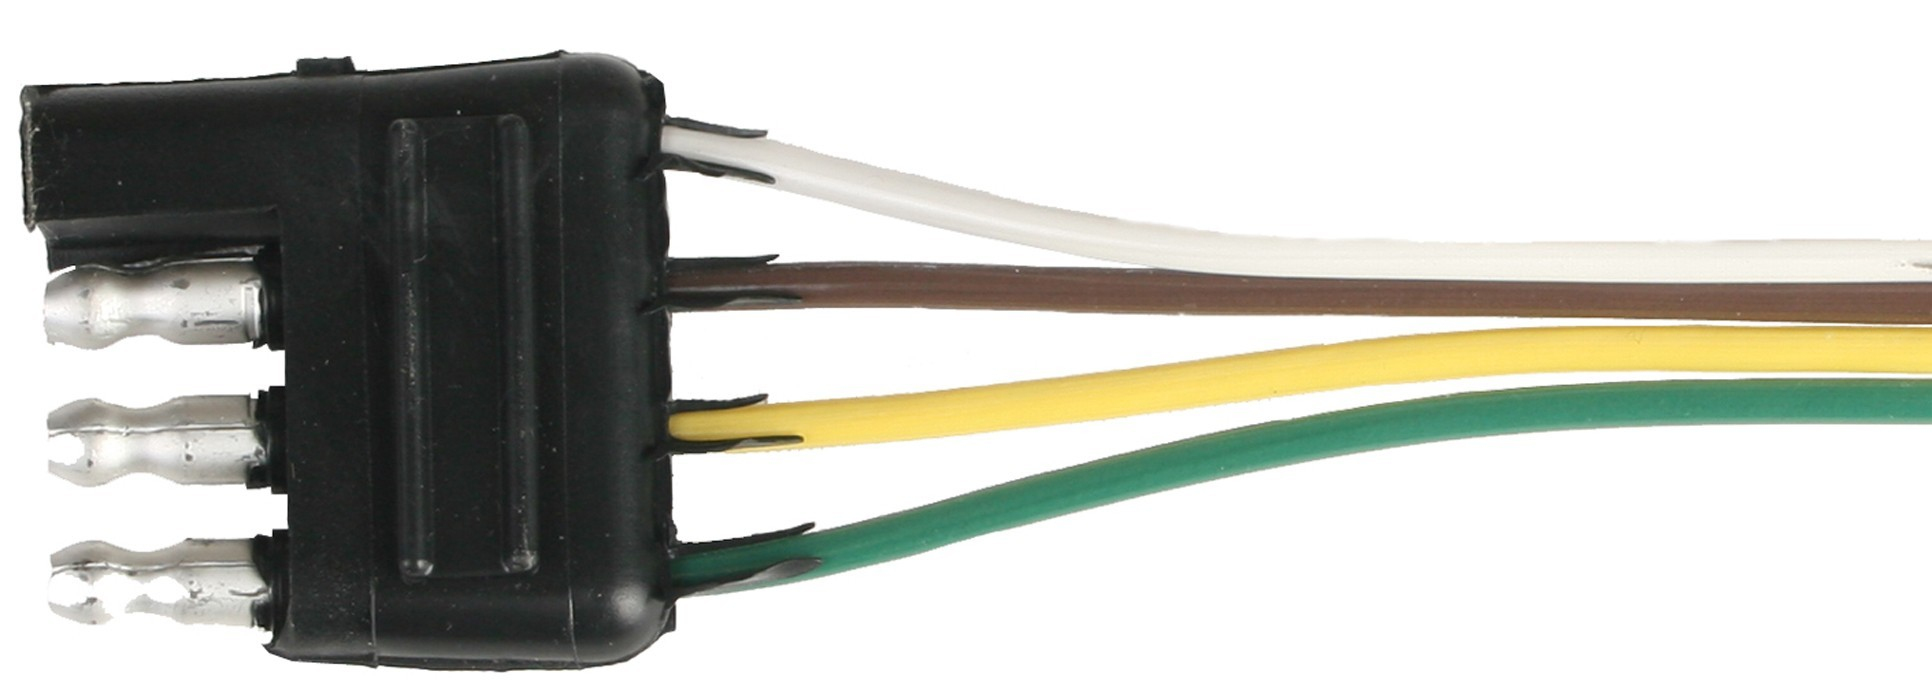 hight resolution of 25 wire harness 4 way flat car end connector